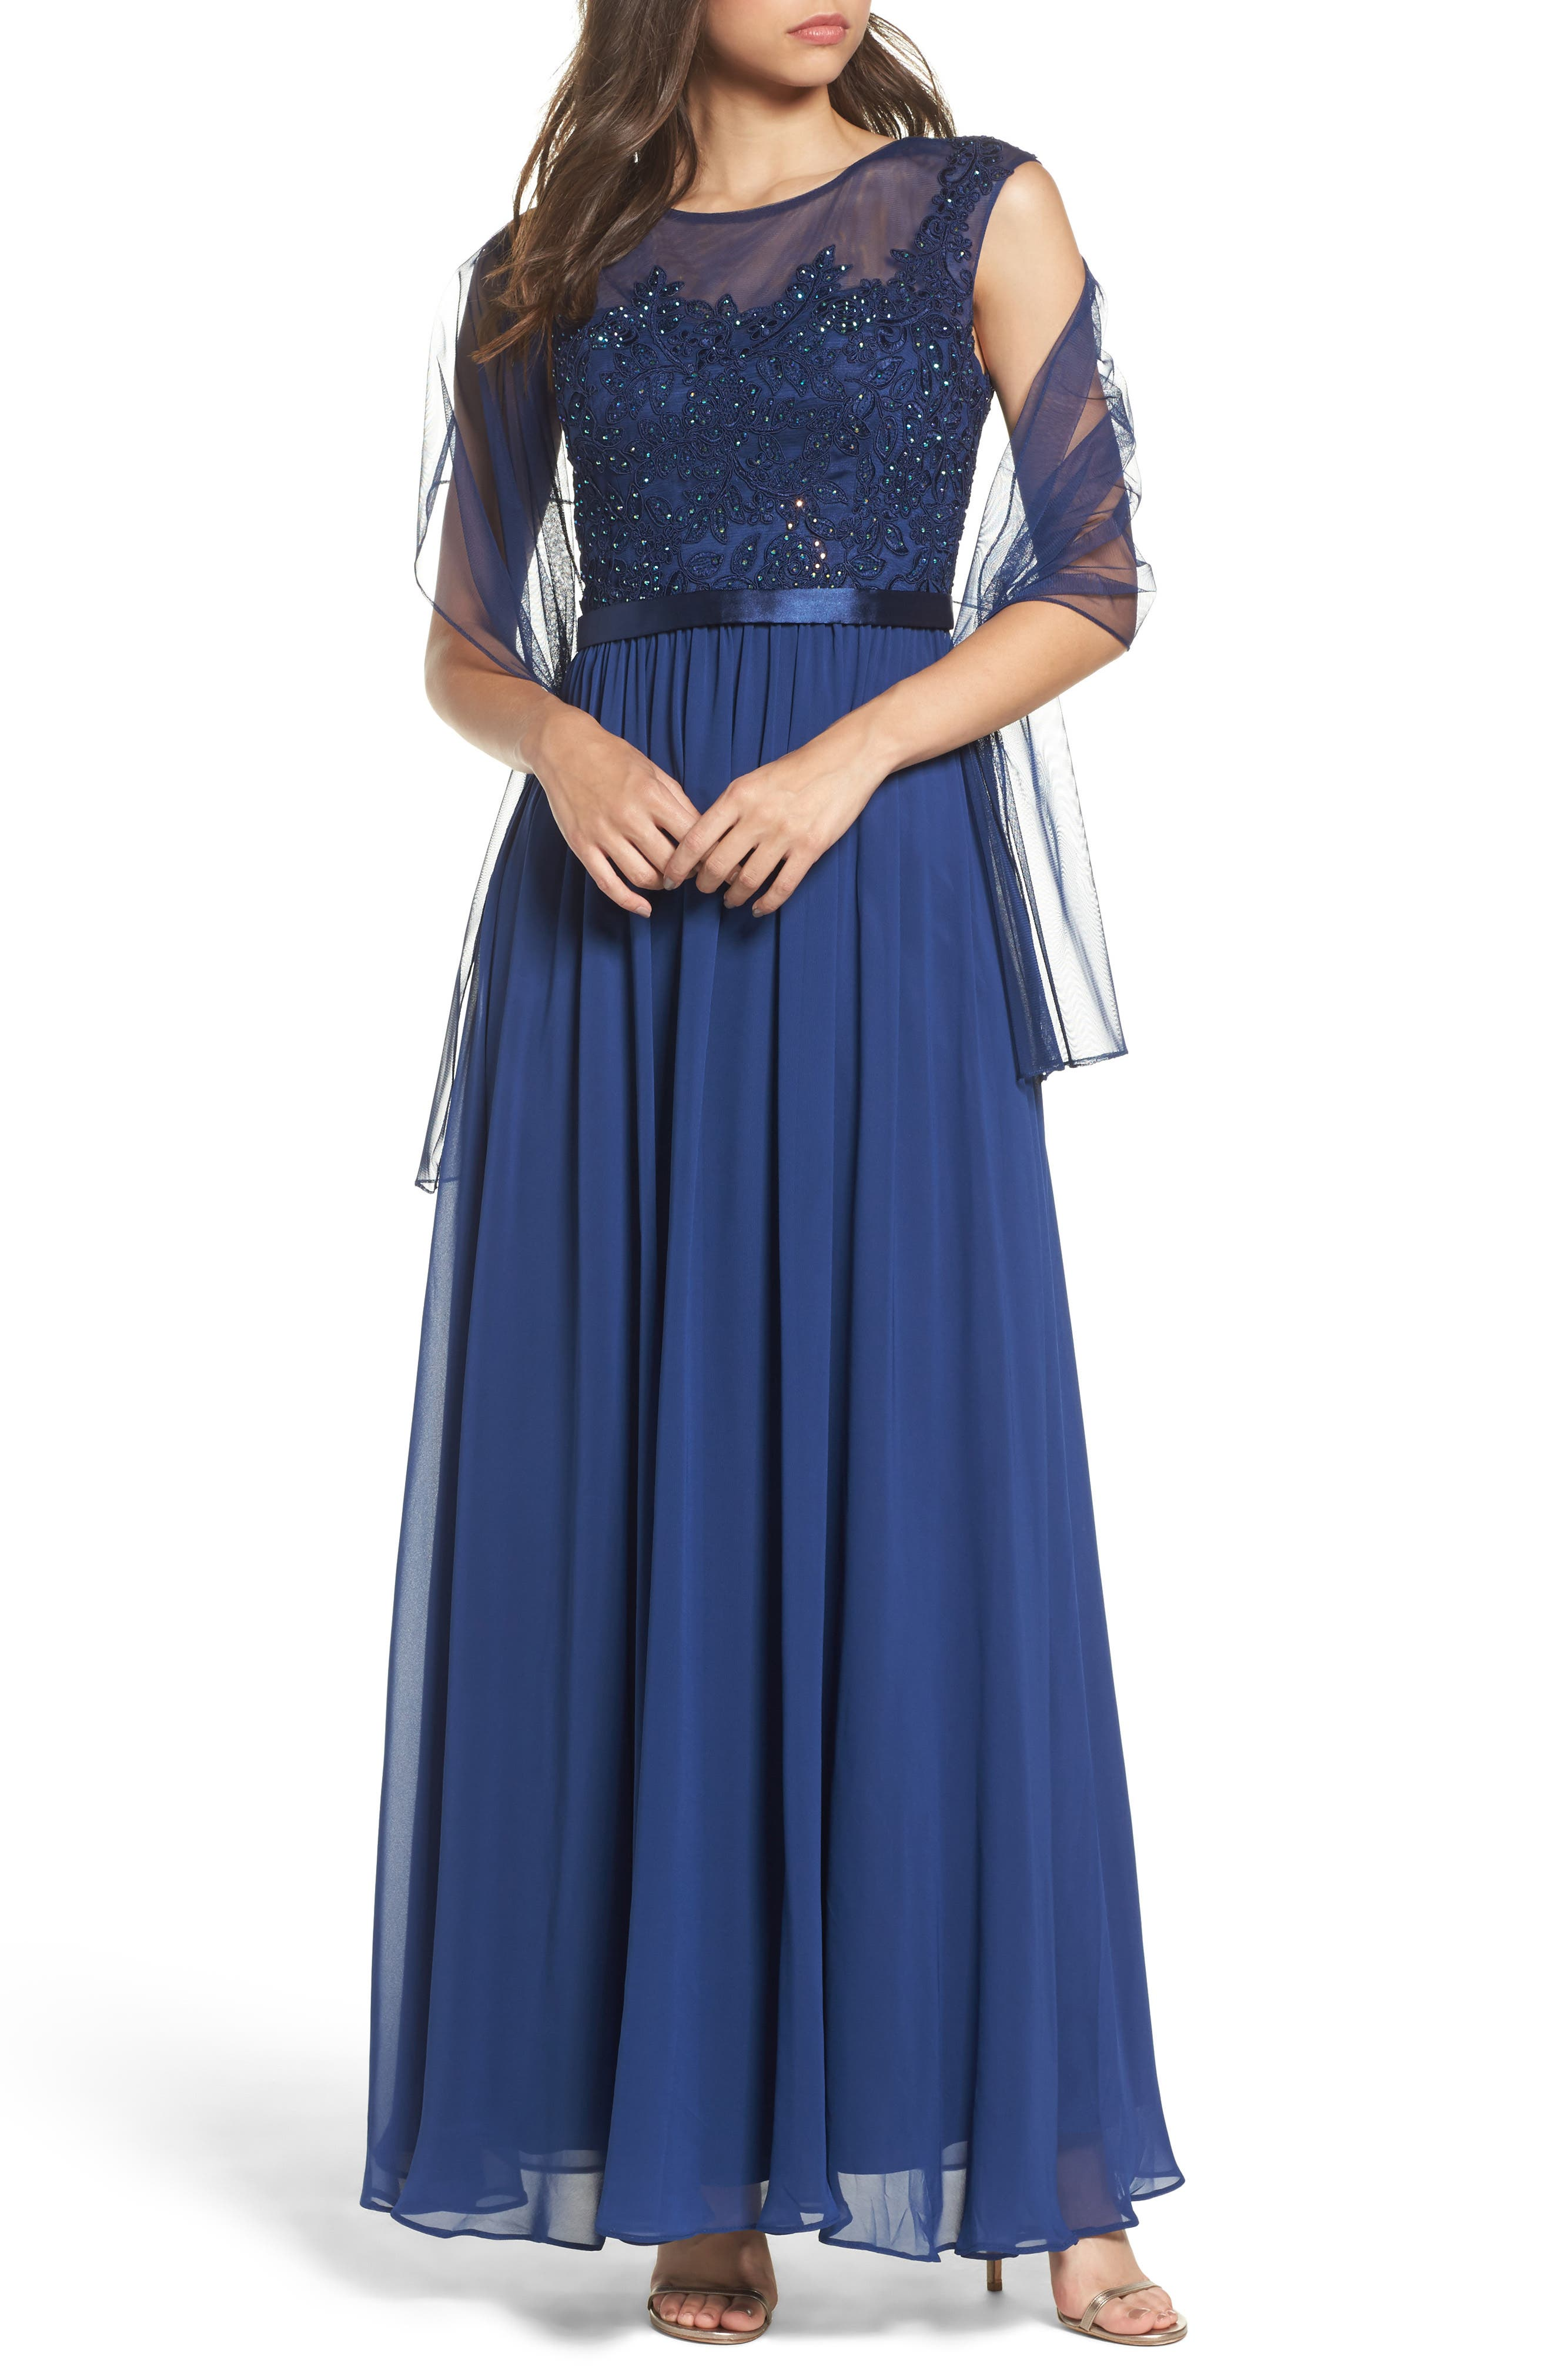 Alternate Image 1 Selected - Xcape Embellished Bodice Mesh A-Line Gown